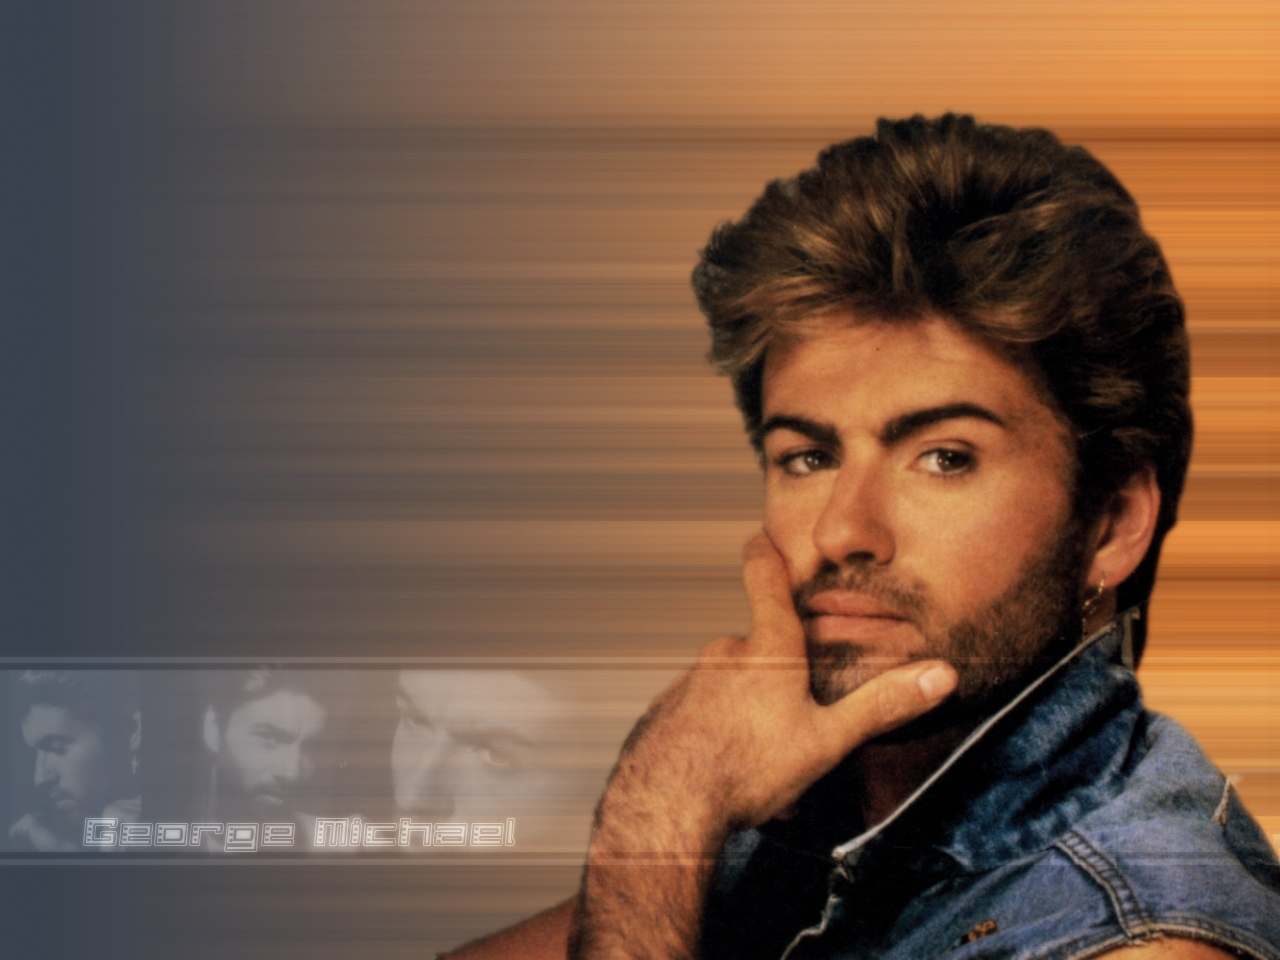 George Michael HairStyle (Men HairStyles) George Michael